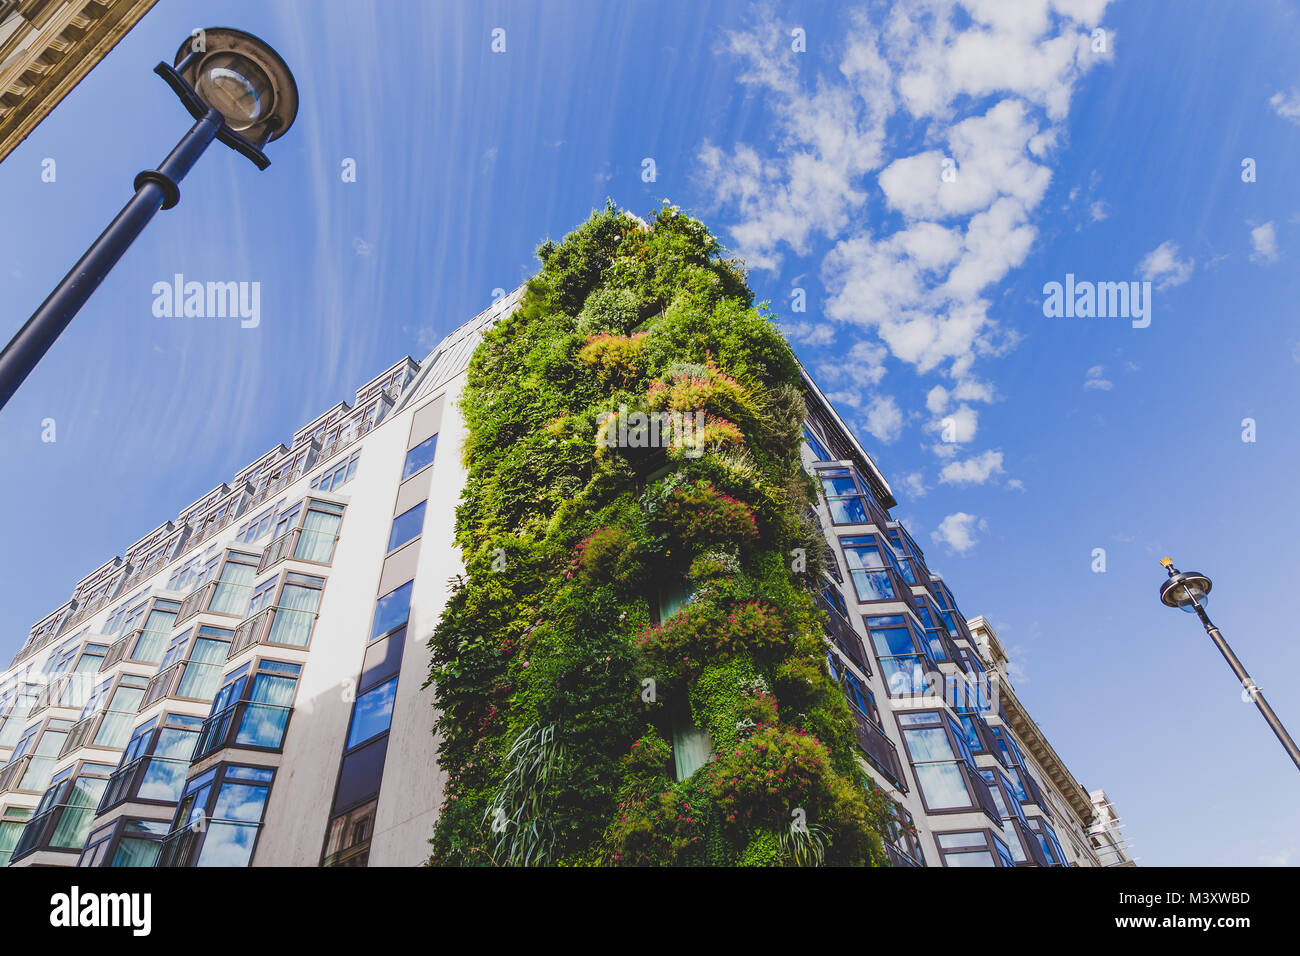 LONDON, UNITED KINGDOM - August, 21th, 2015: growing plant installation along the exterior of The Athenaeum Hotel - Stock Image